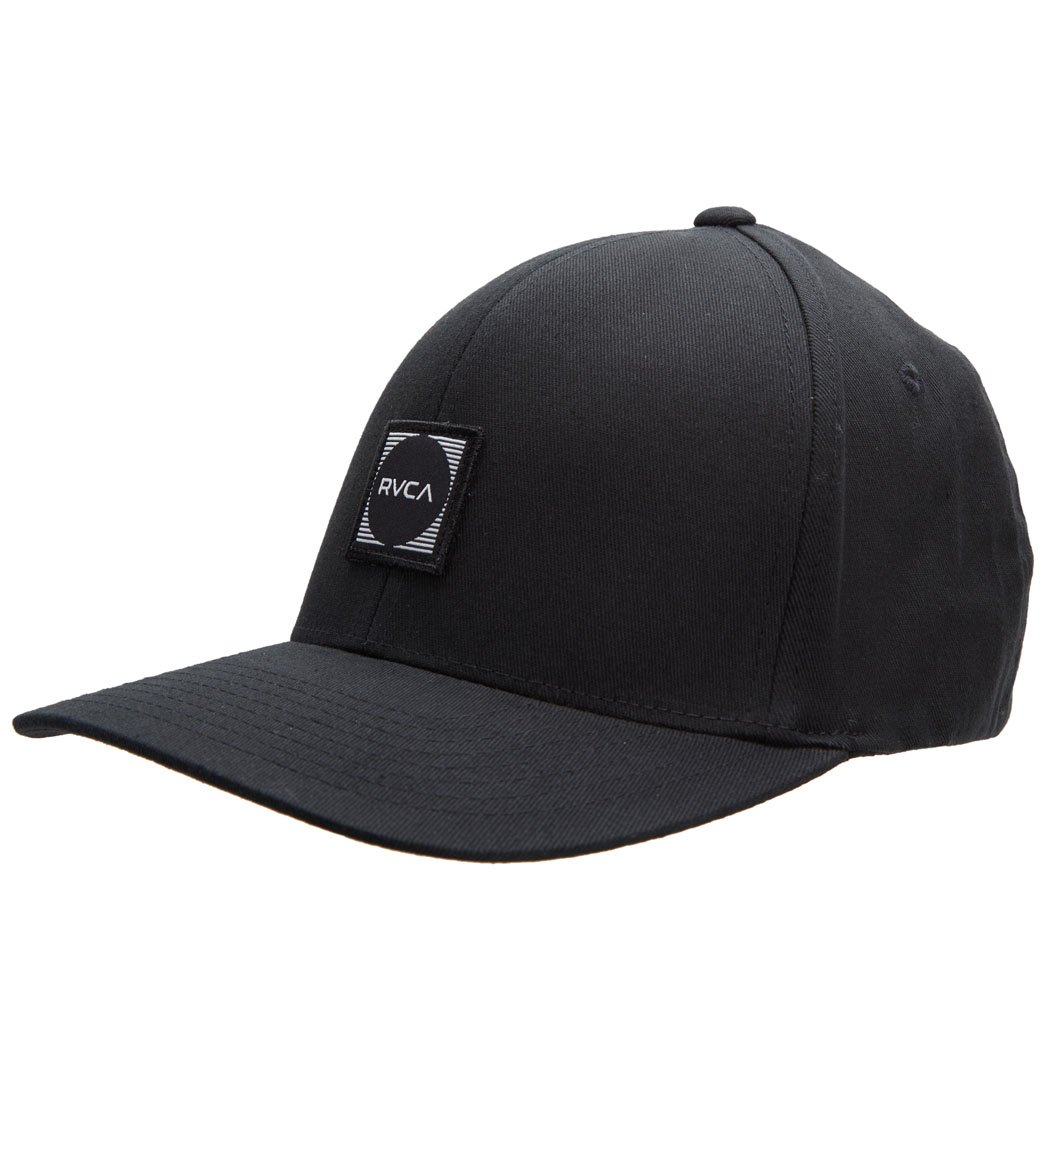 finest selection 745b5 0fa55 RVCA Flexfit Scores Hat at SwimOutlet.com